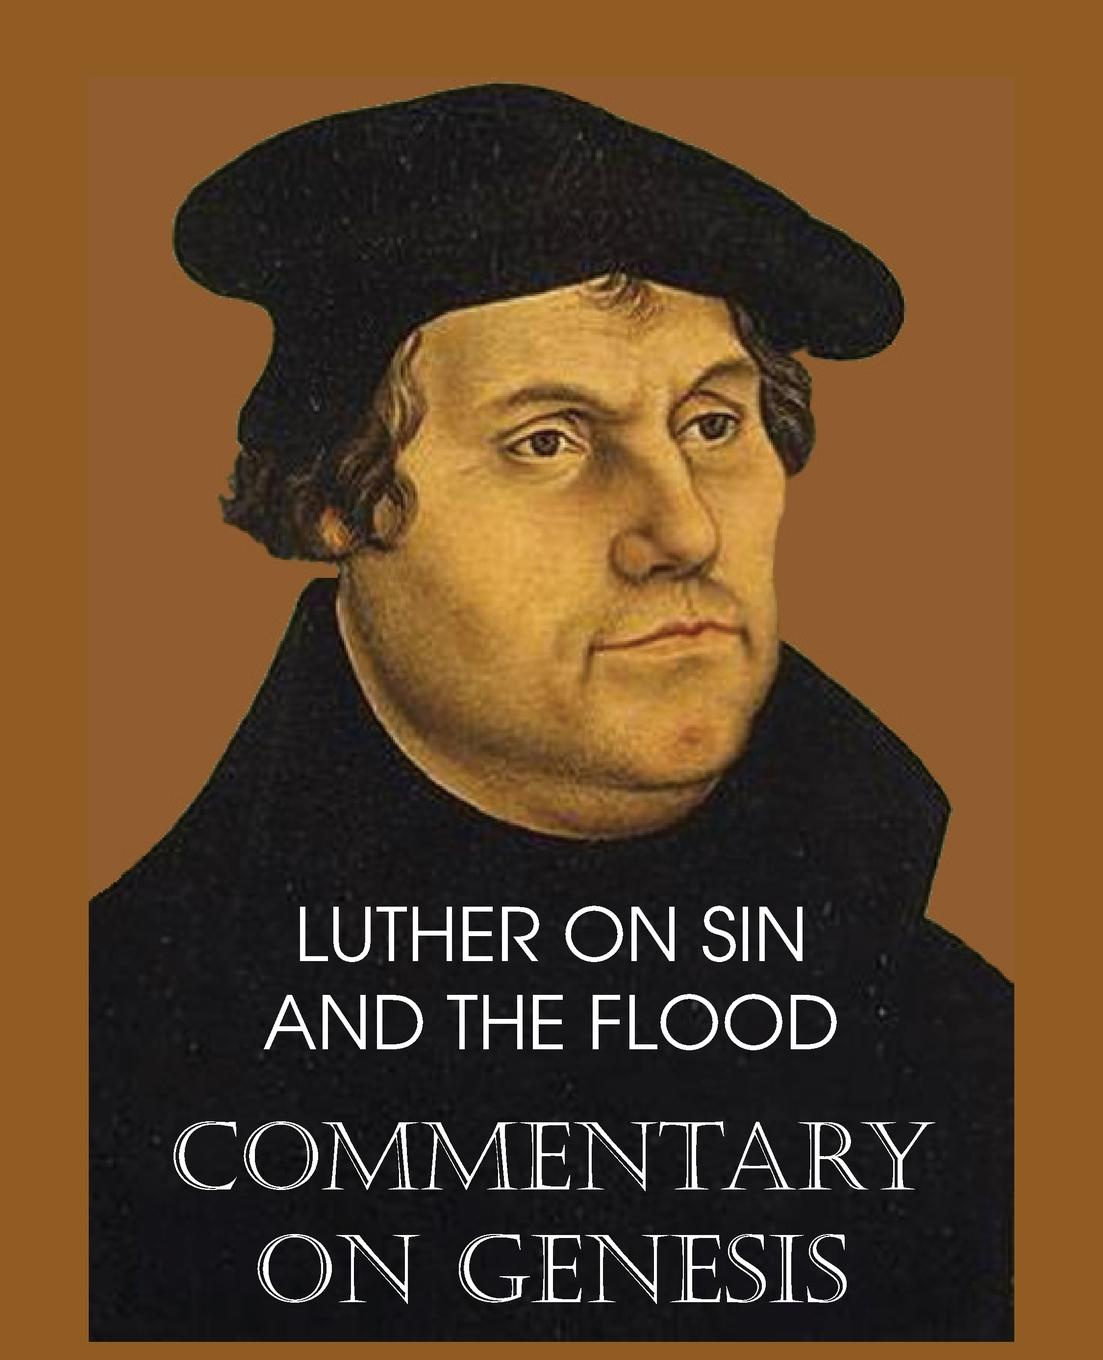 Martin Luther, John Nicholas Lenker Luther on Sin and the Flood - Commentary on Genesis, Vol. II martin luther john nicholas lenker luther on sin and the flood commentary on genesis vol ii